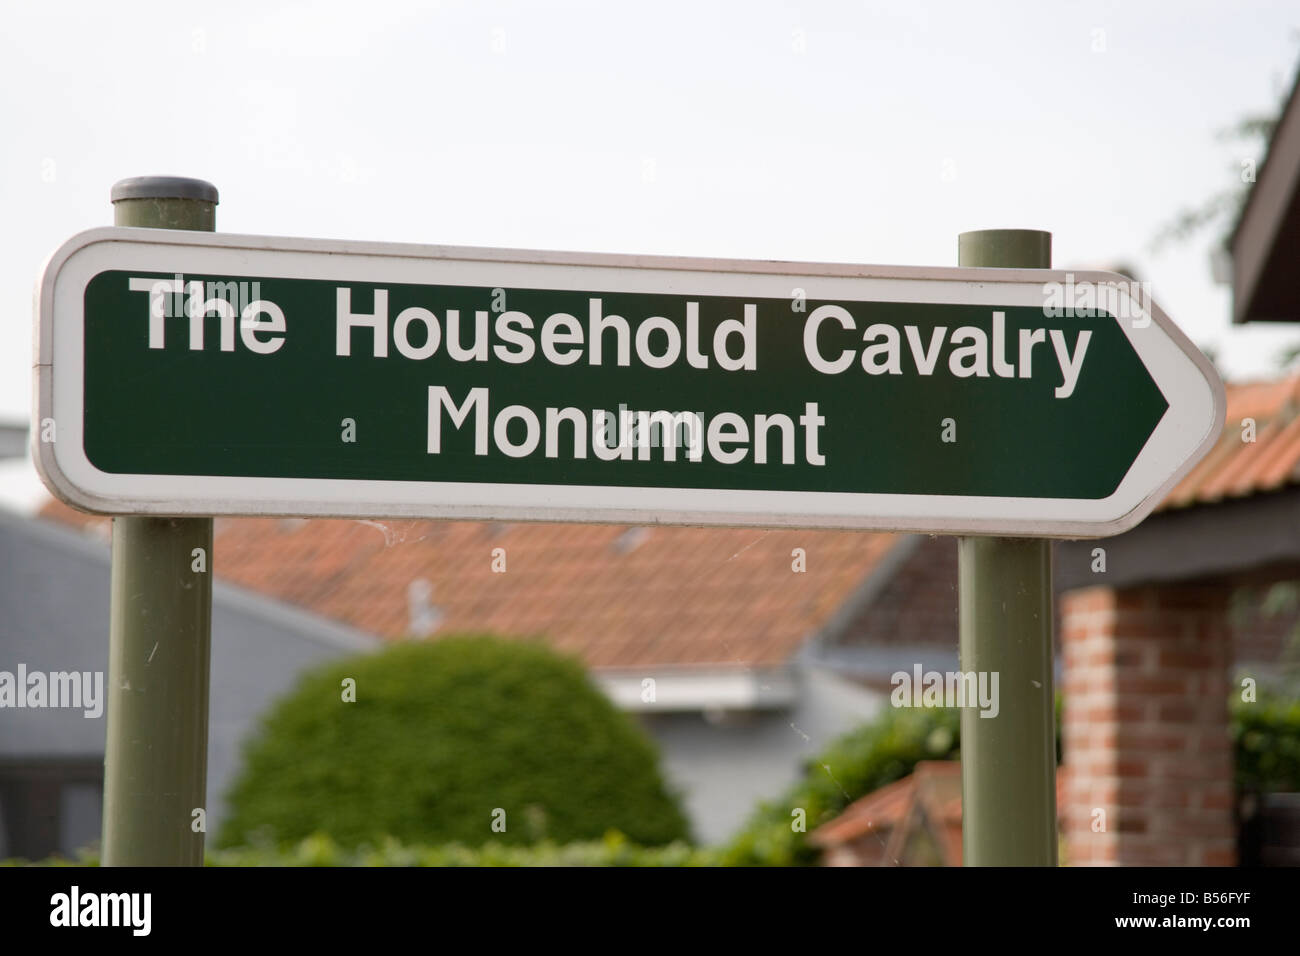 The Household Cavalry Monument at Zandvoorde near Ypres,memorial to the battles of October 1914 in the First World - Stock Image